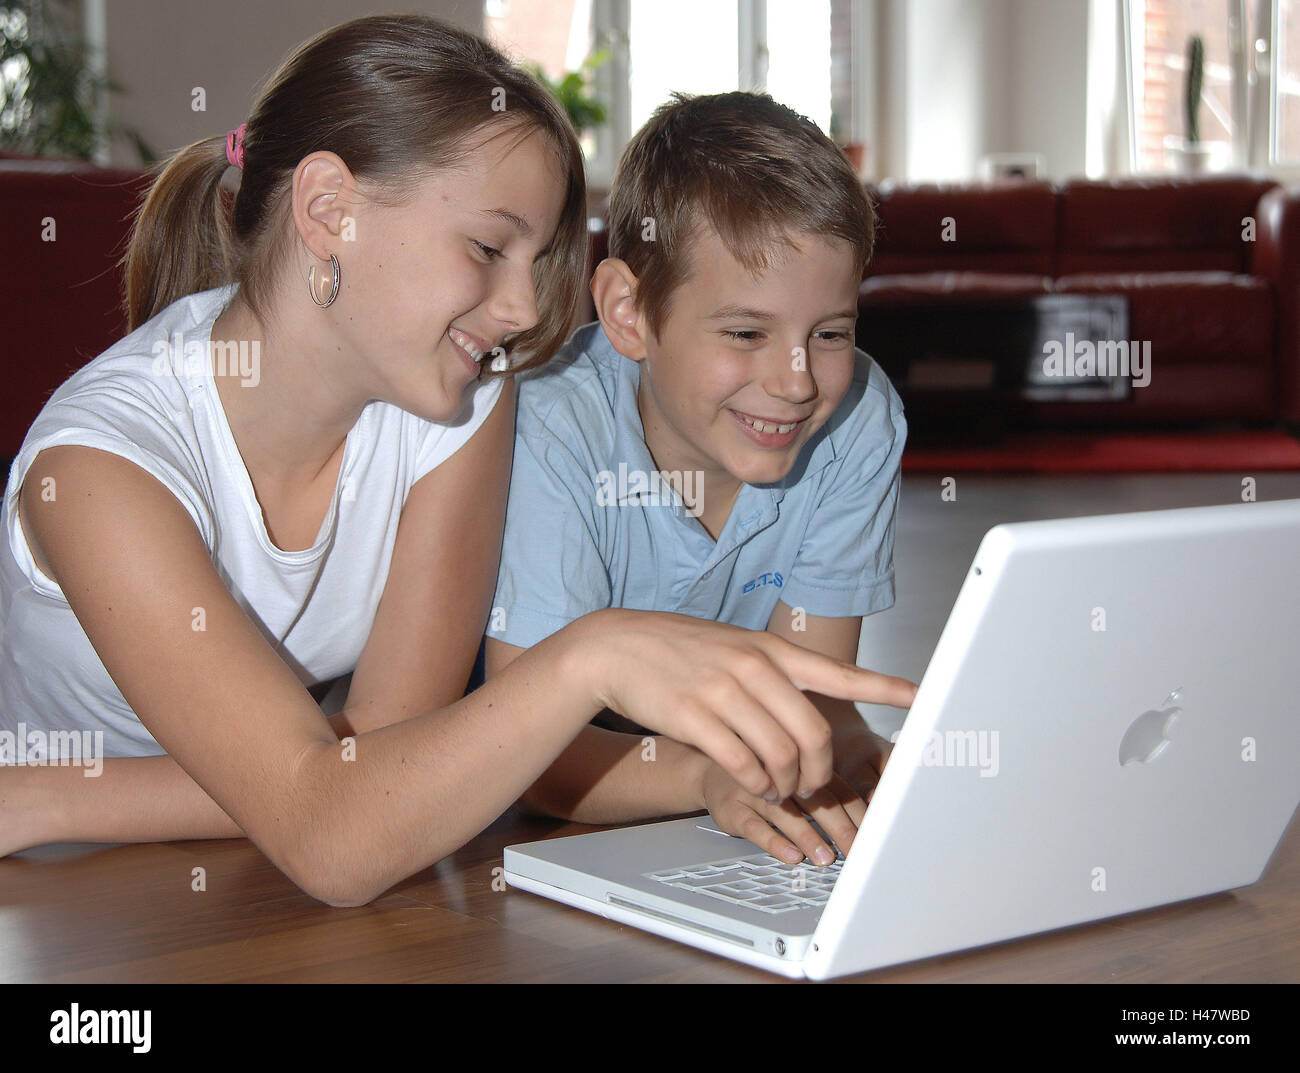 Girls, boy, notebook computer, Internet surfing, happy, people, children, siblings, brother, sister, friends, computers, - Stock Image